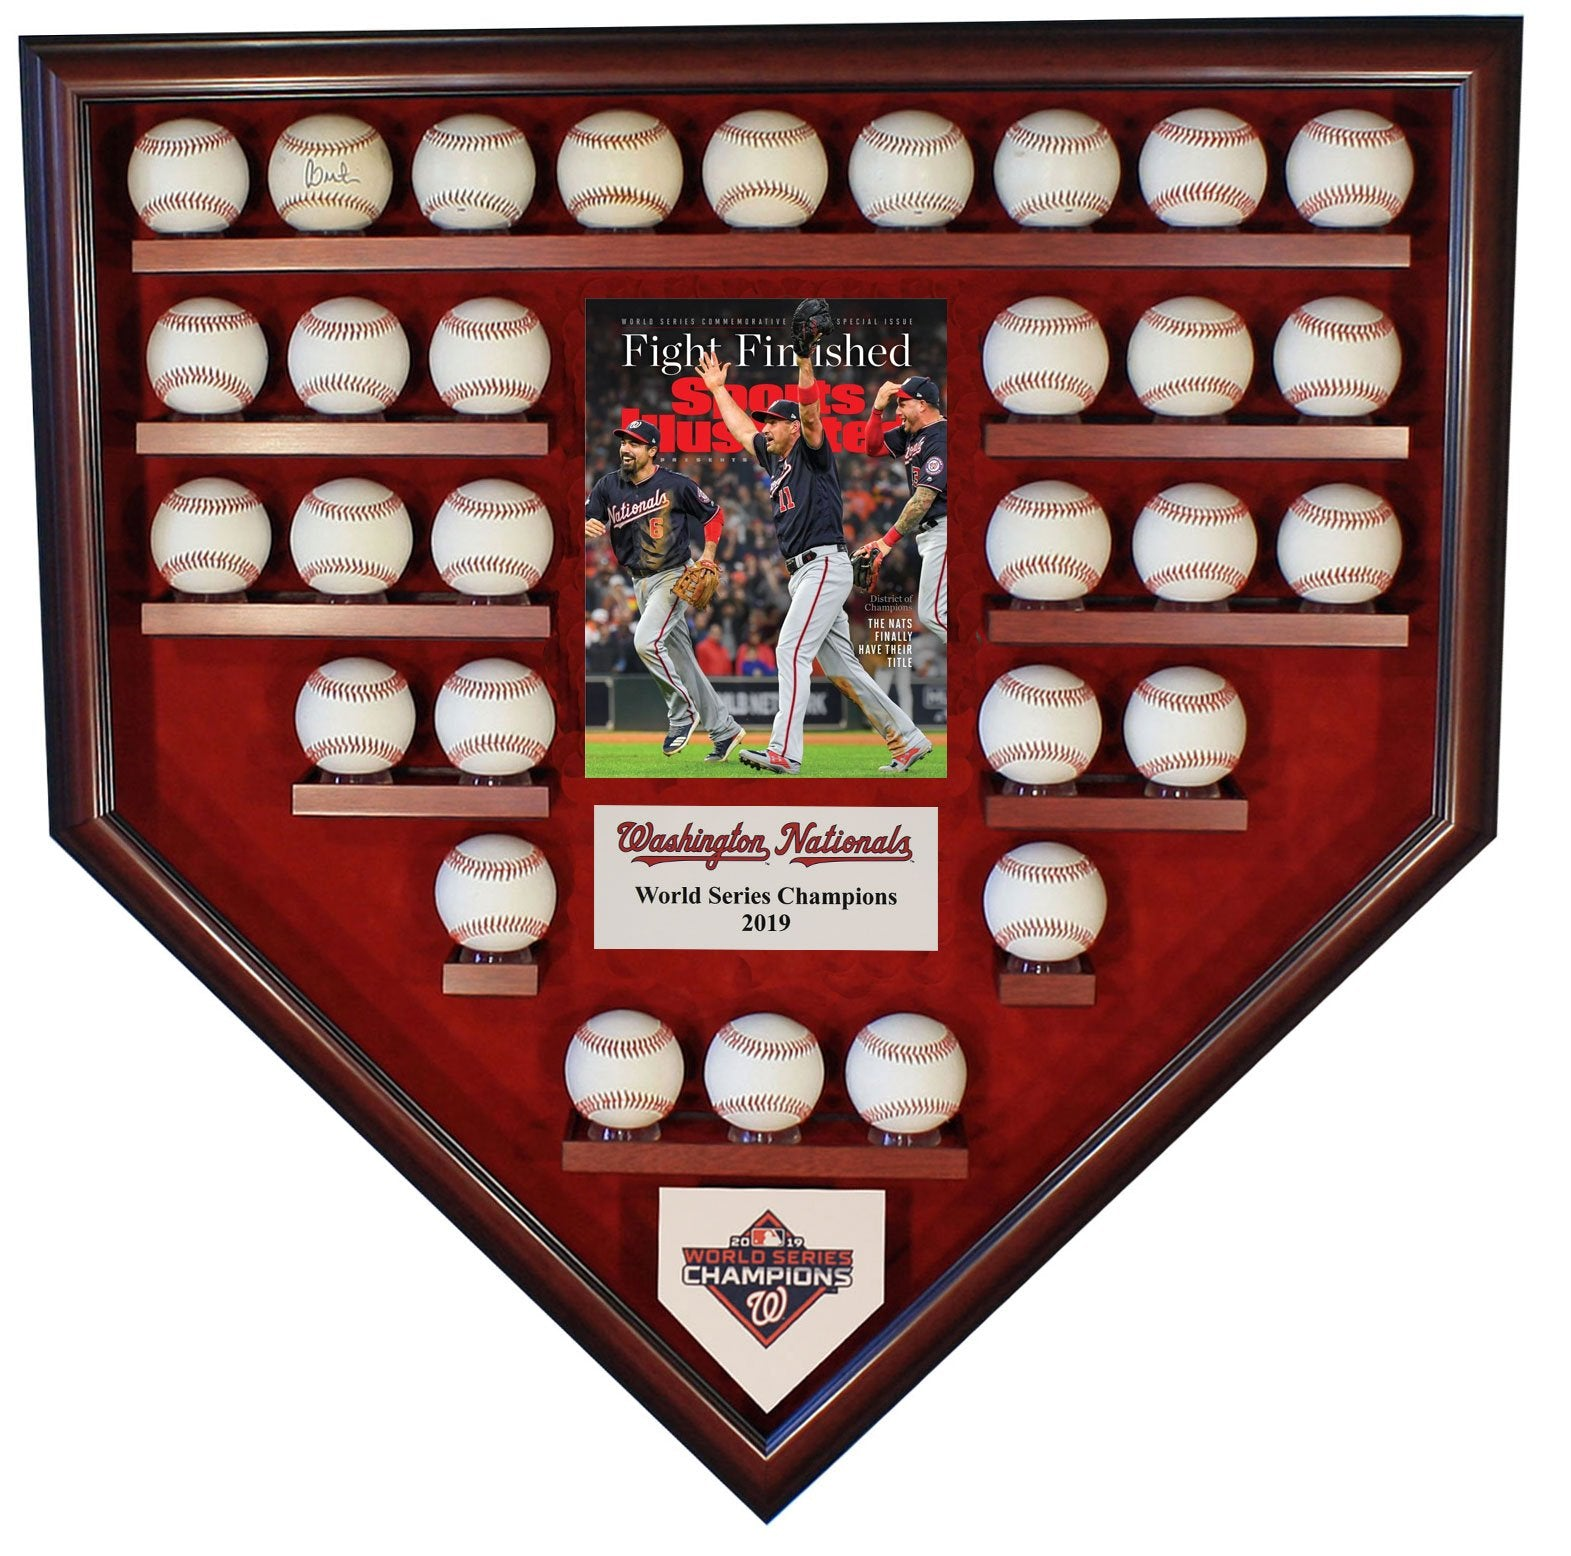 30 BASEBALL W/SI WASHINGTON NATIONALS 2019 WORLD SERIES HOMEPLATE SHAPED DISPLAY CASE-Powers Sports Memorabilia